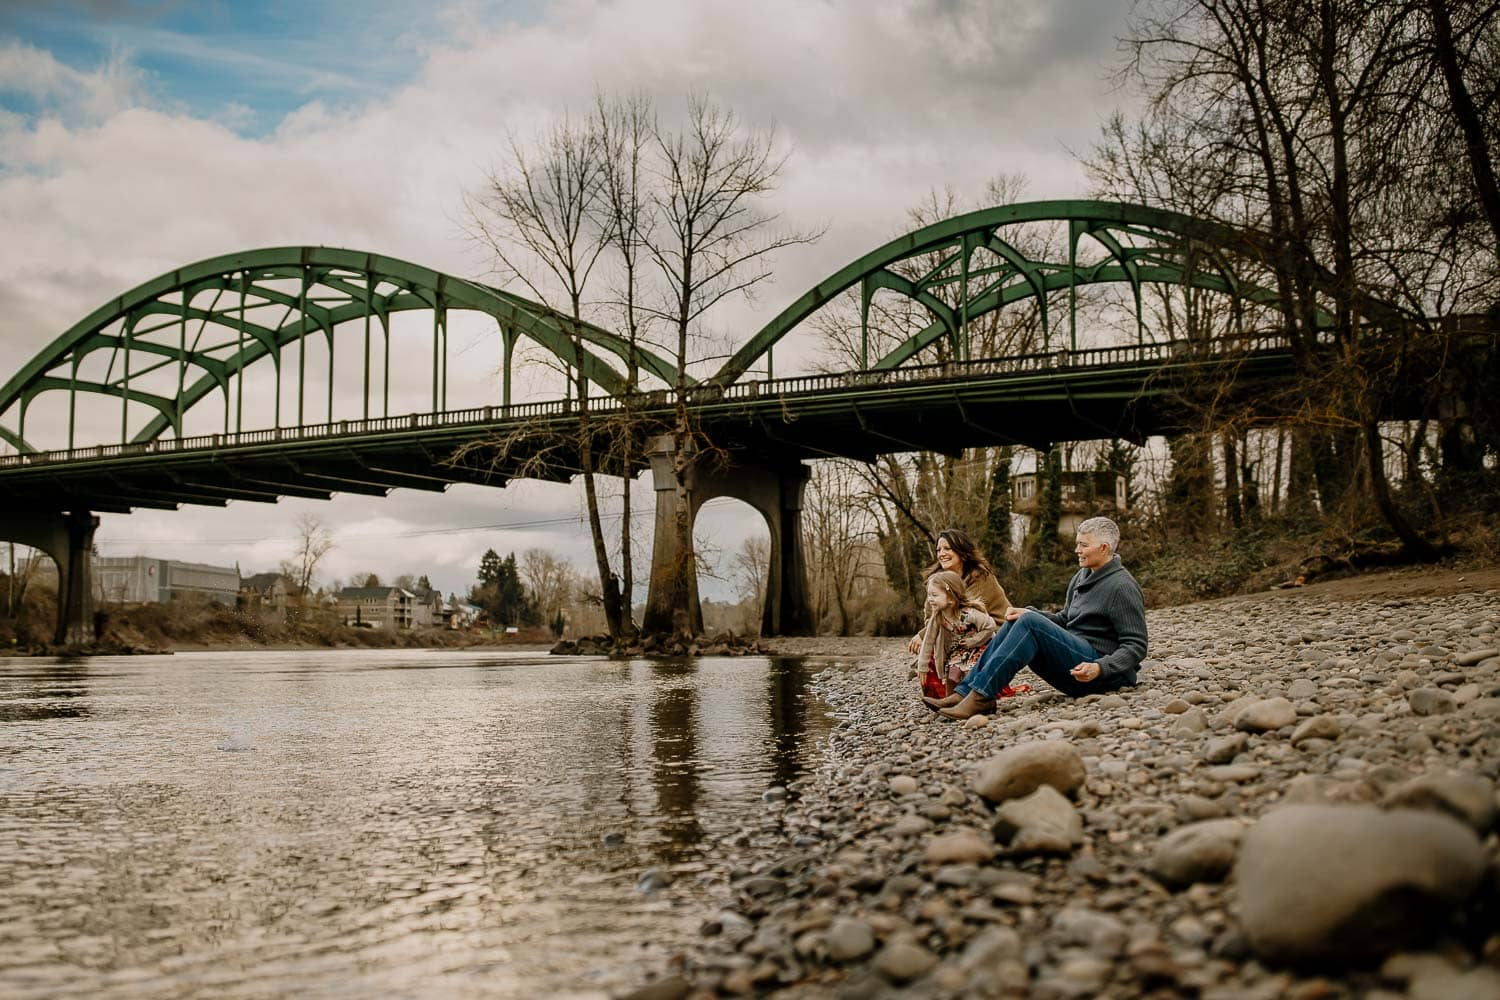 family of three sitting by a bridge throwing rocks into the river - top favorite tools for photography business